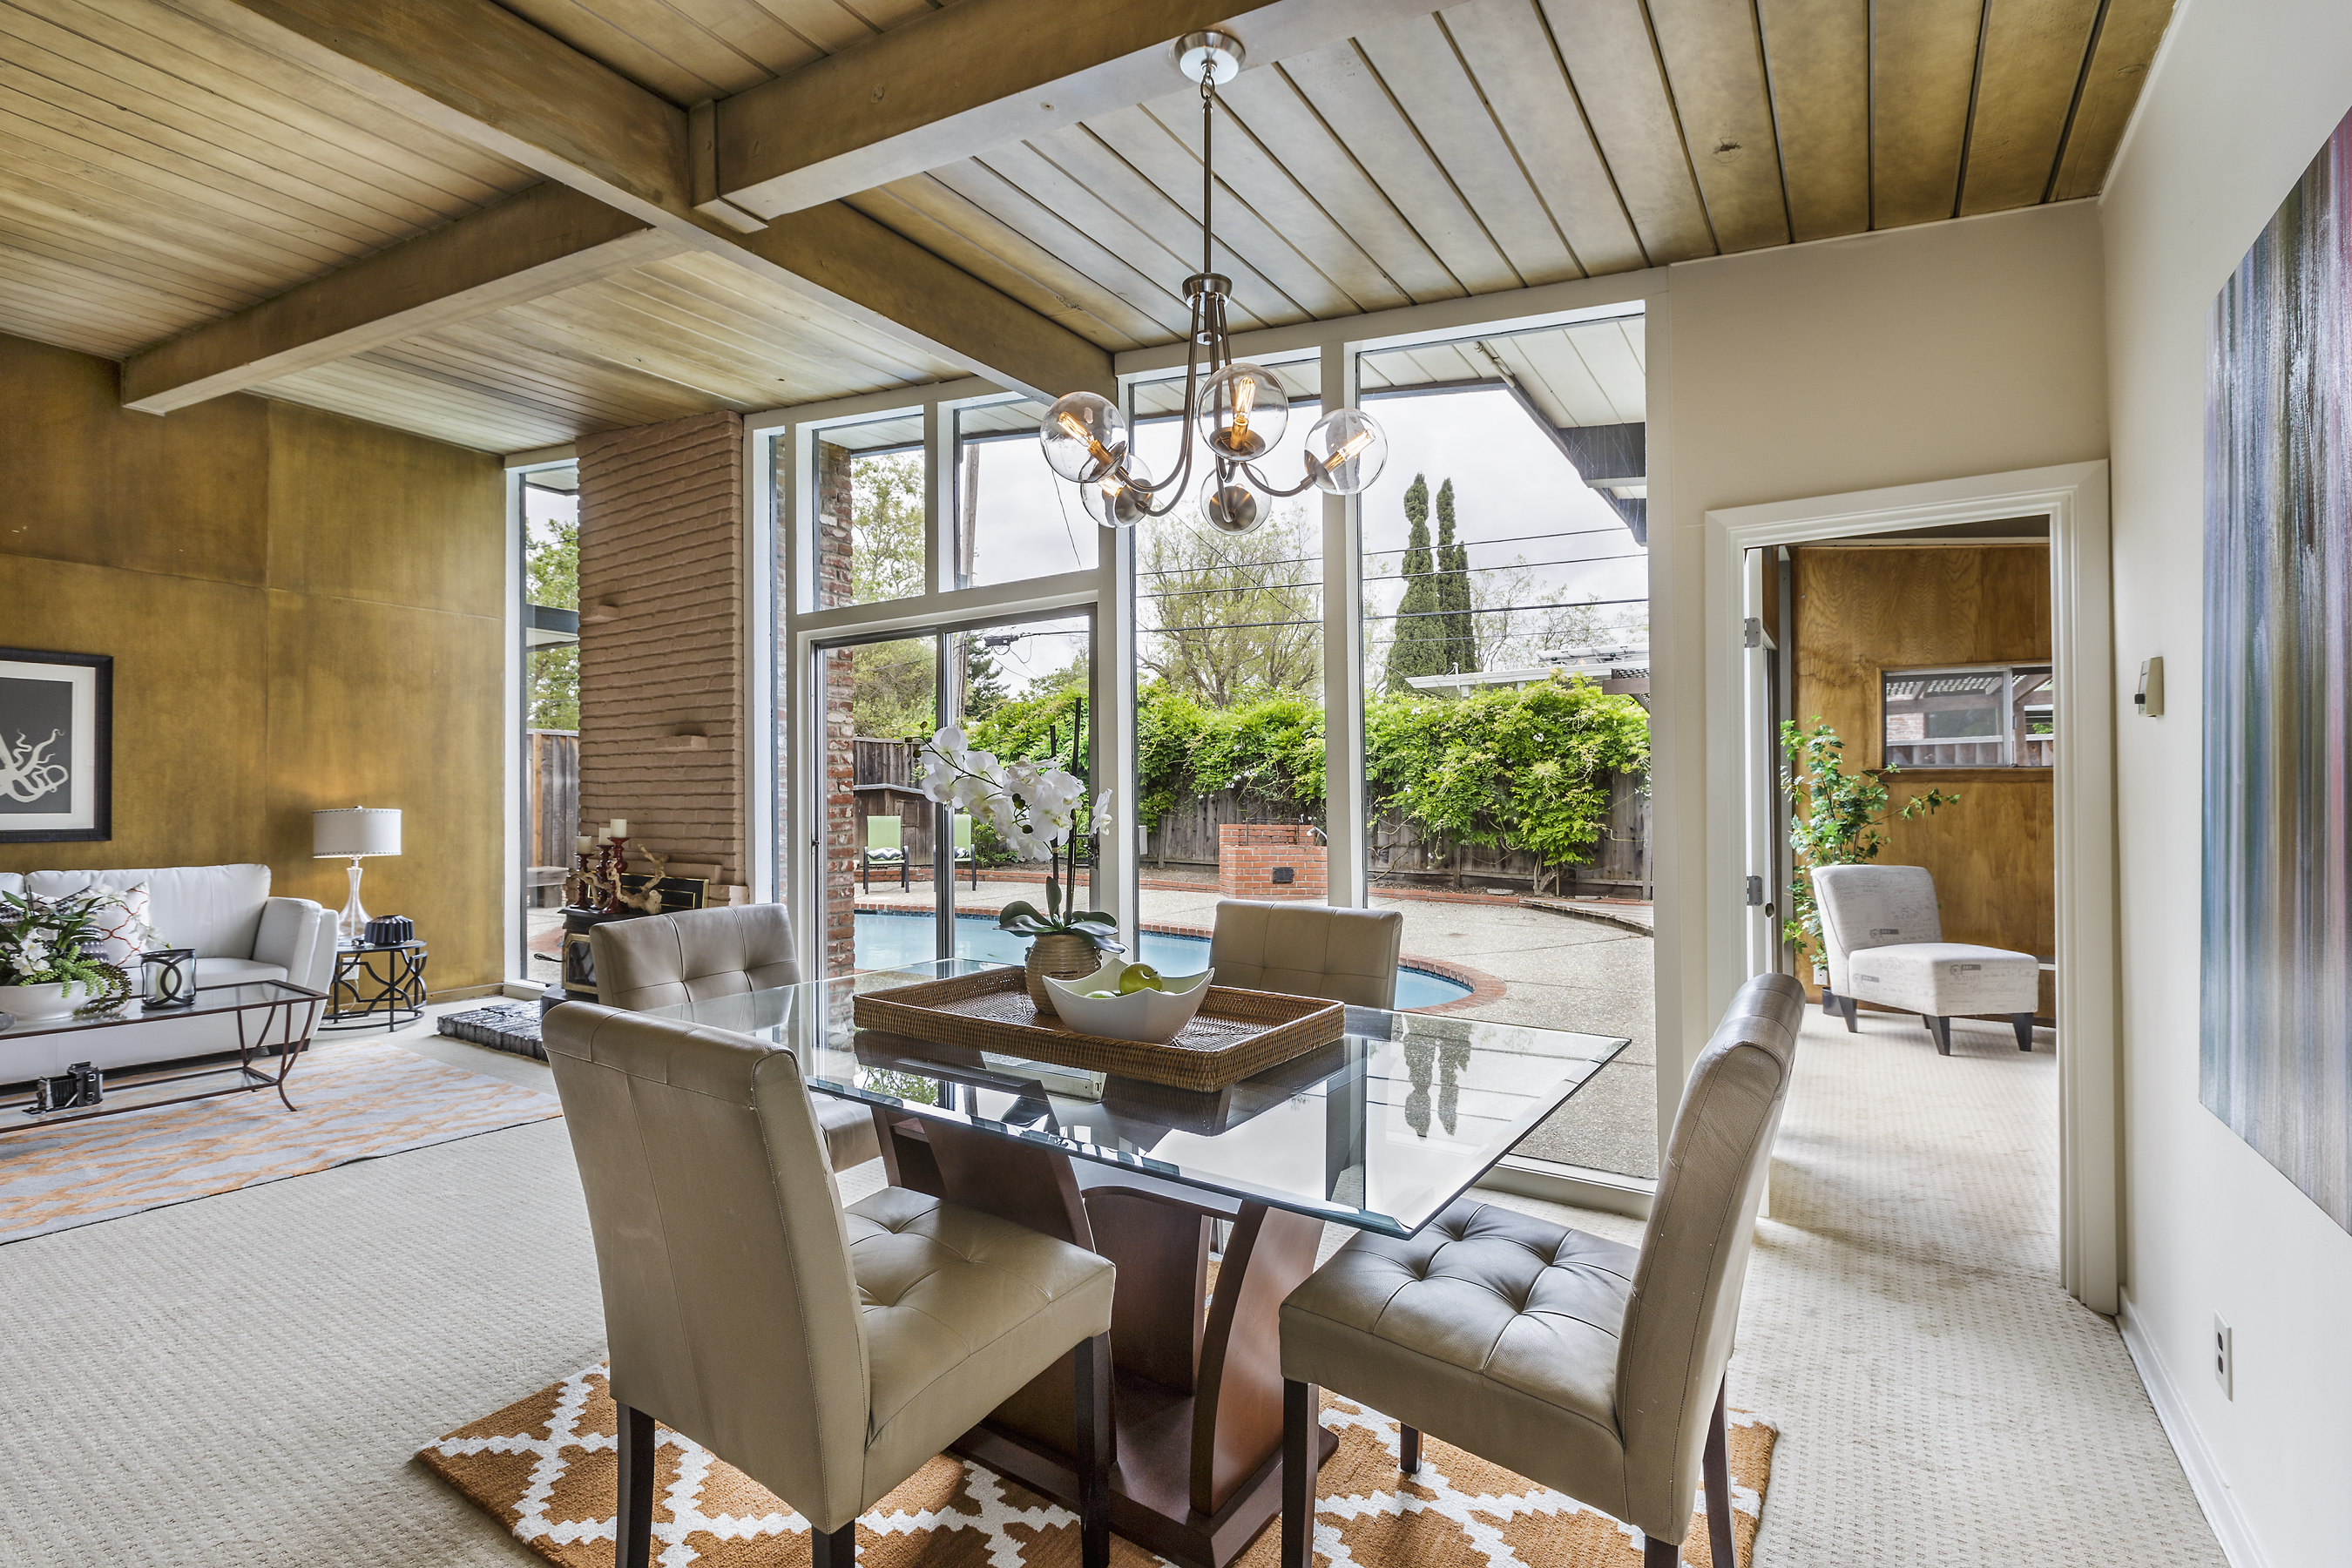 06-172-Atherwood-dining-high-res